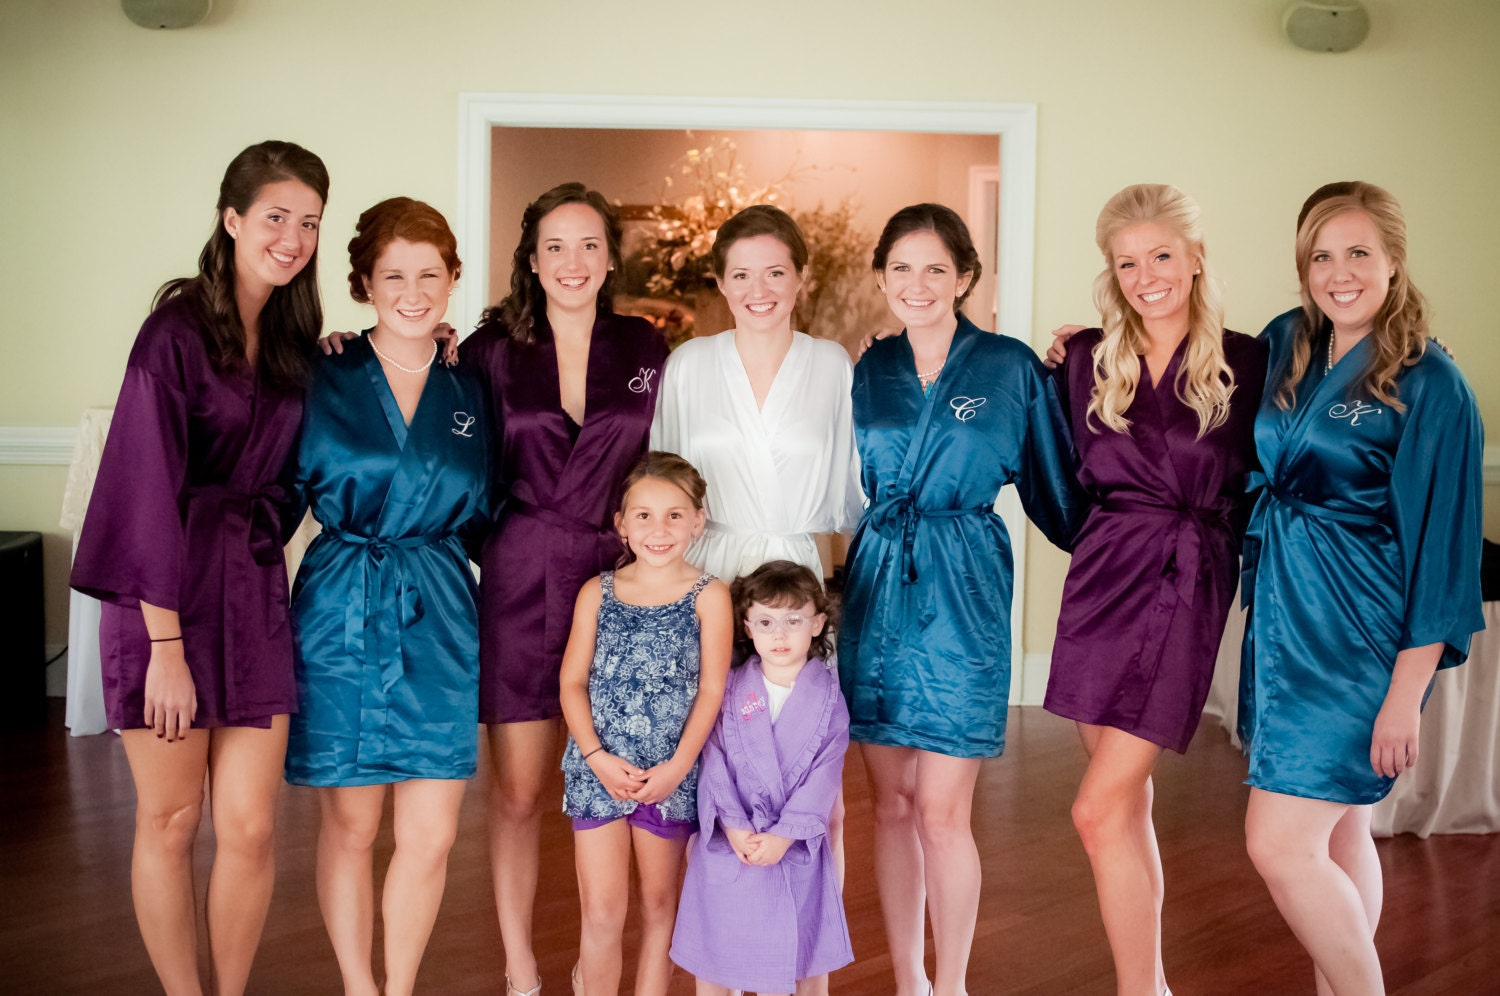 Bridesmaid robes set of purple robes teal robes Bridesmaid  21afc7cfd